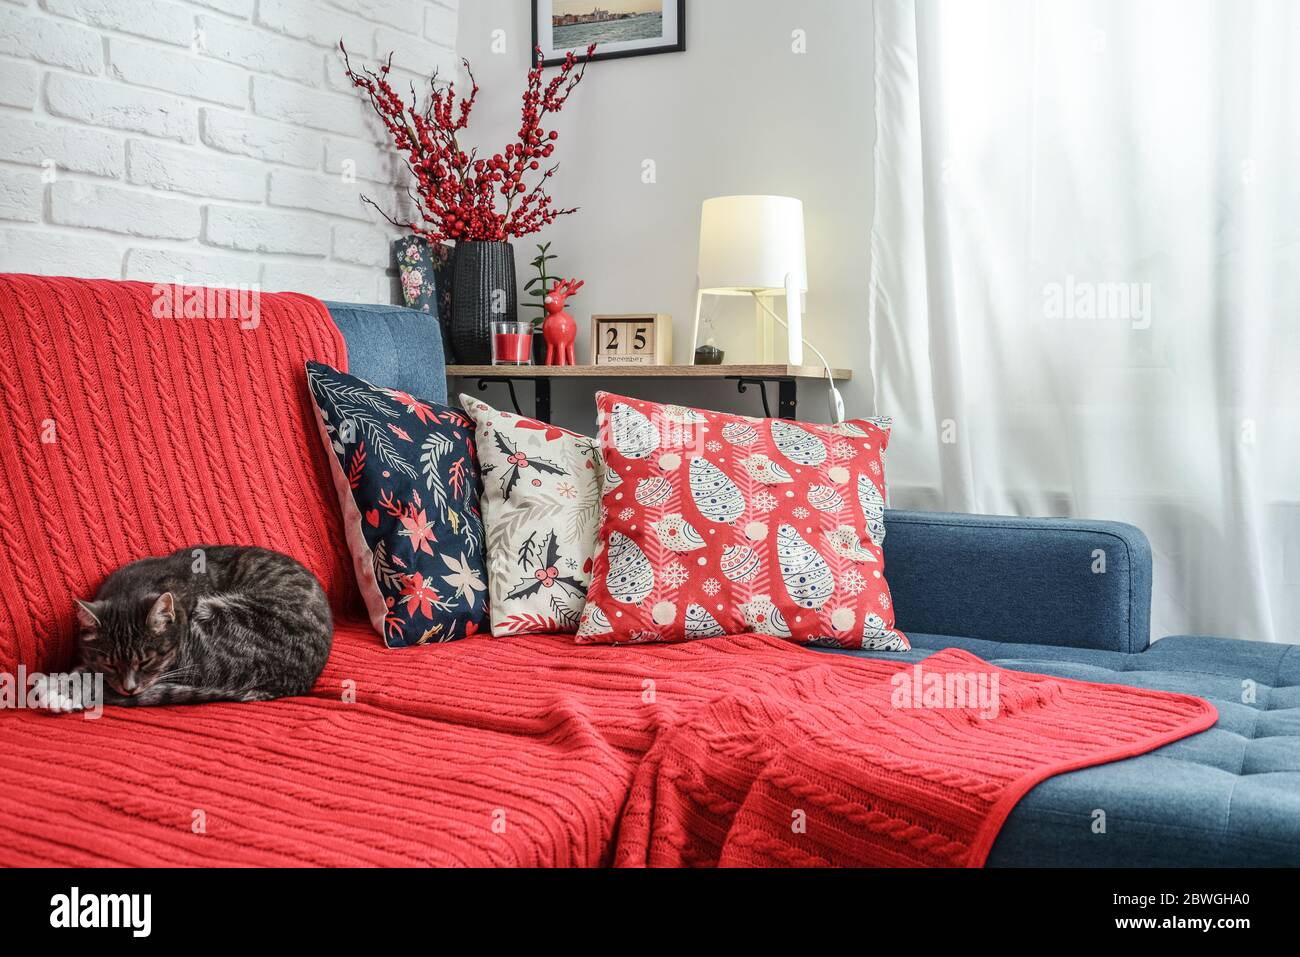 Christmas Decorations With Candles And Red Plaid On Couch With Cat In Living Room All Photos In Frames On The Wall Made By Me Stock Photo Alamy